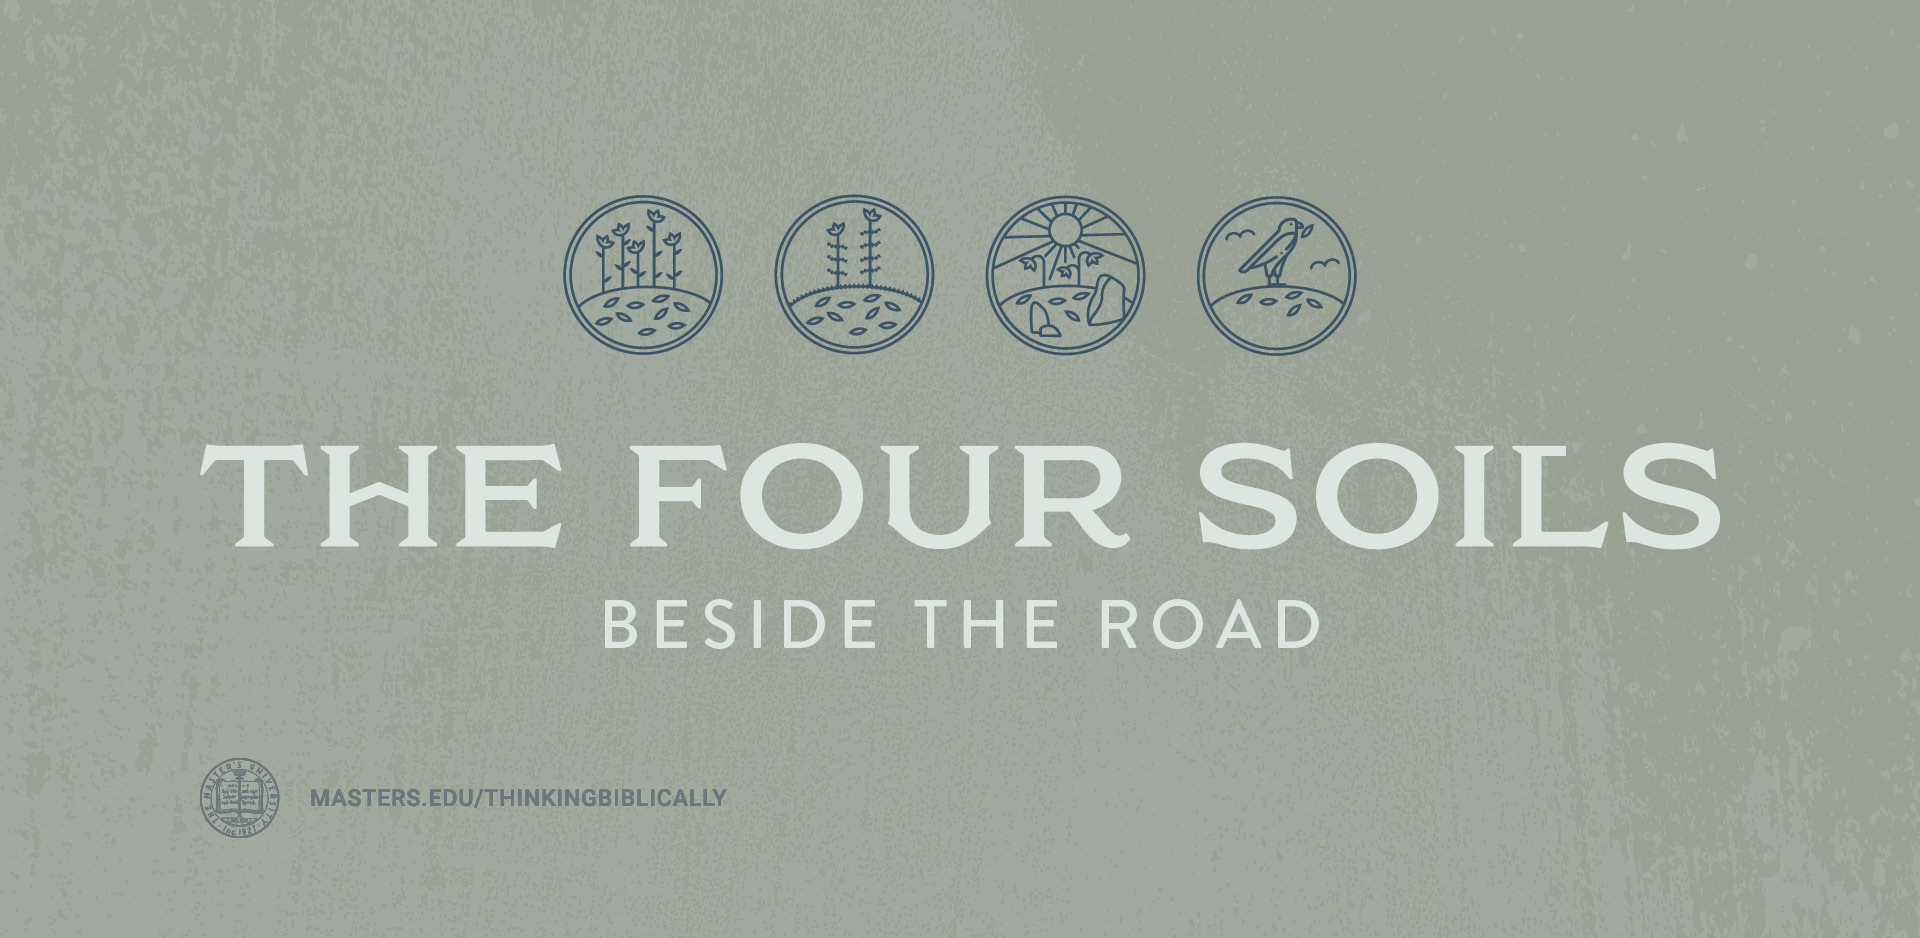 The Four Soils: Beside the Road